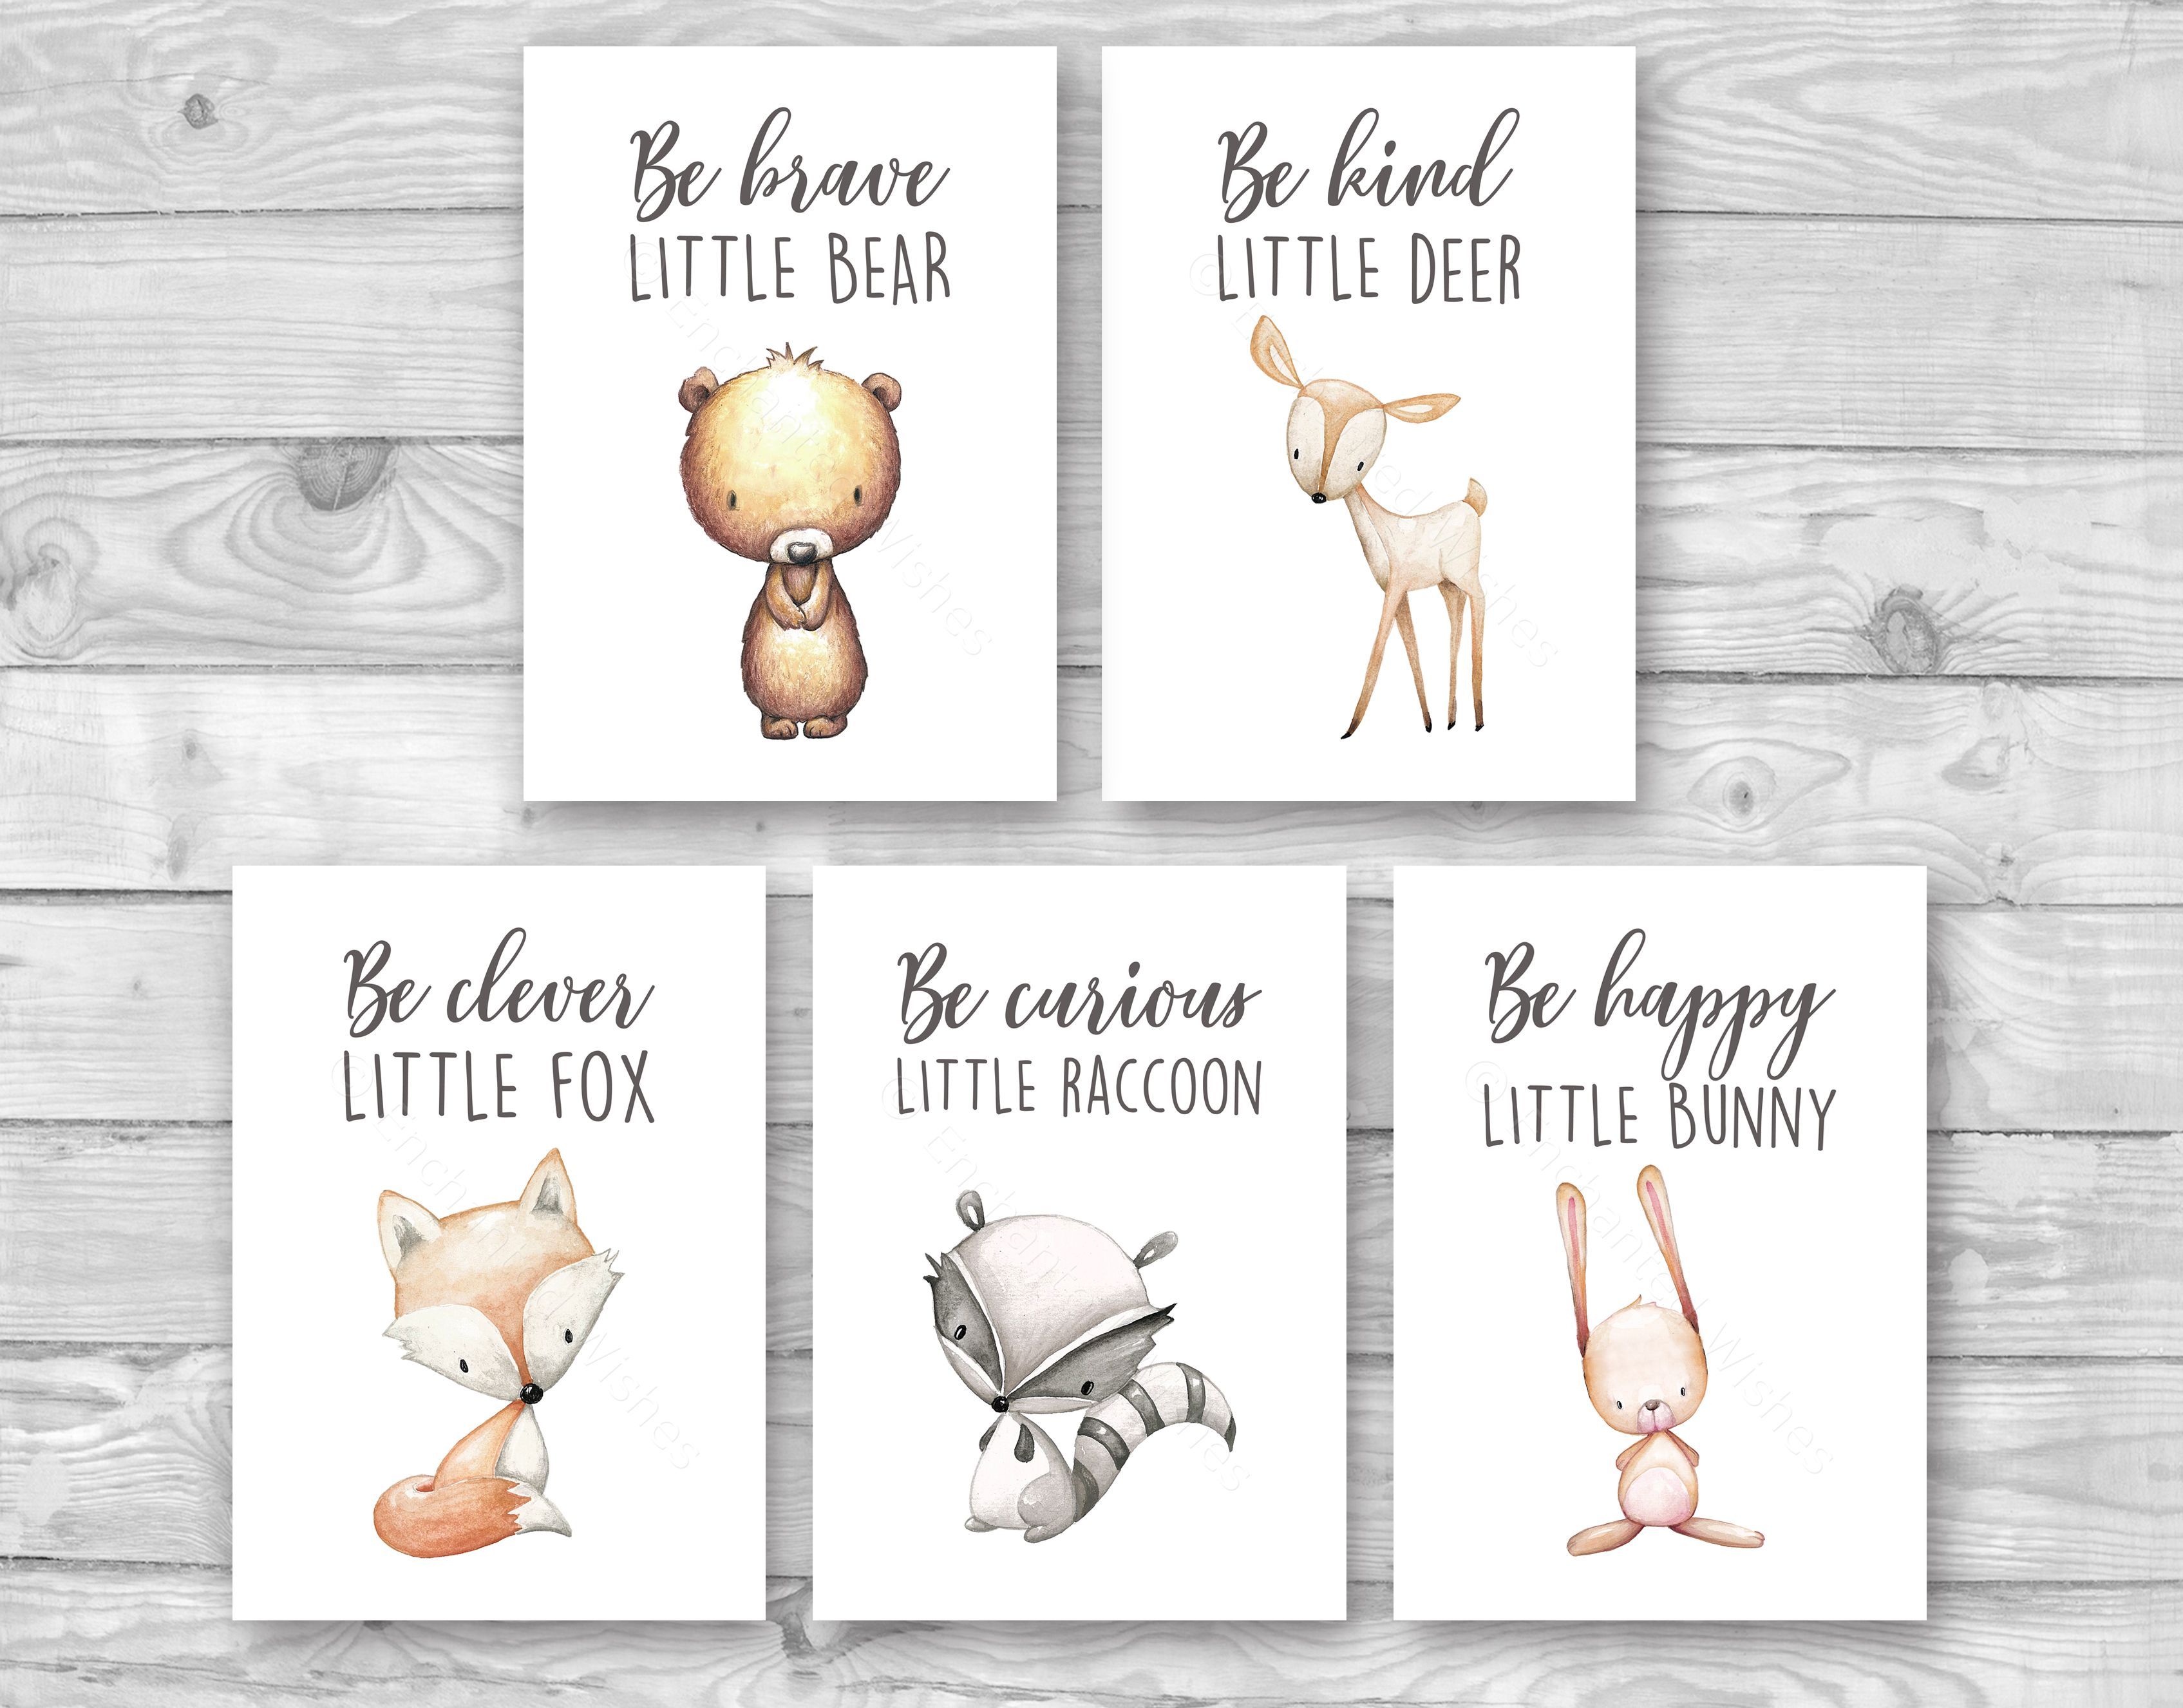 Woodland Baby Shower Free Printables   Free baby shower ...  Woodland Creature Baby Shower Quotes